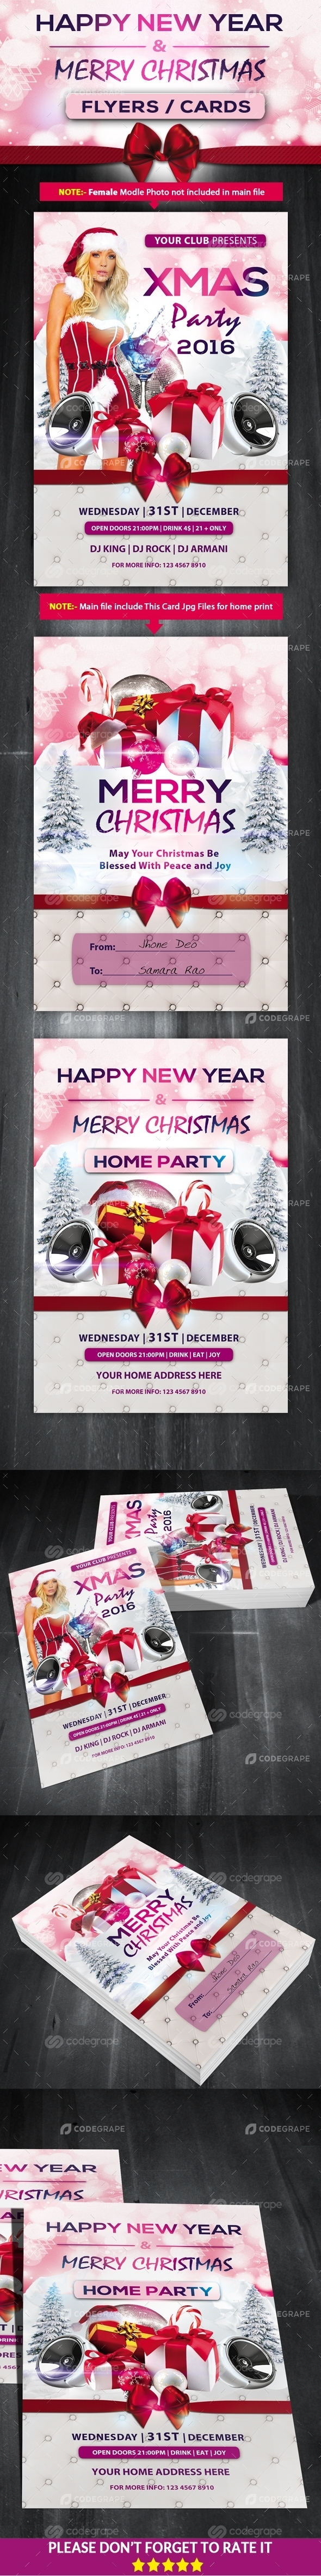 Christmas / New Year Party Flyers